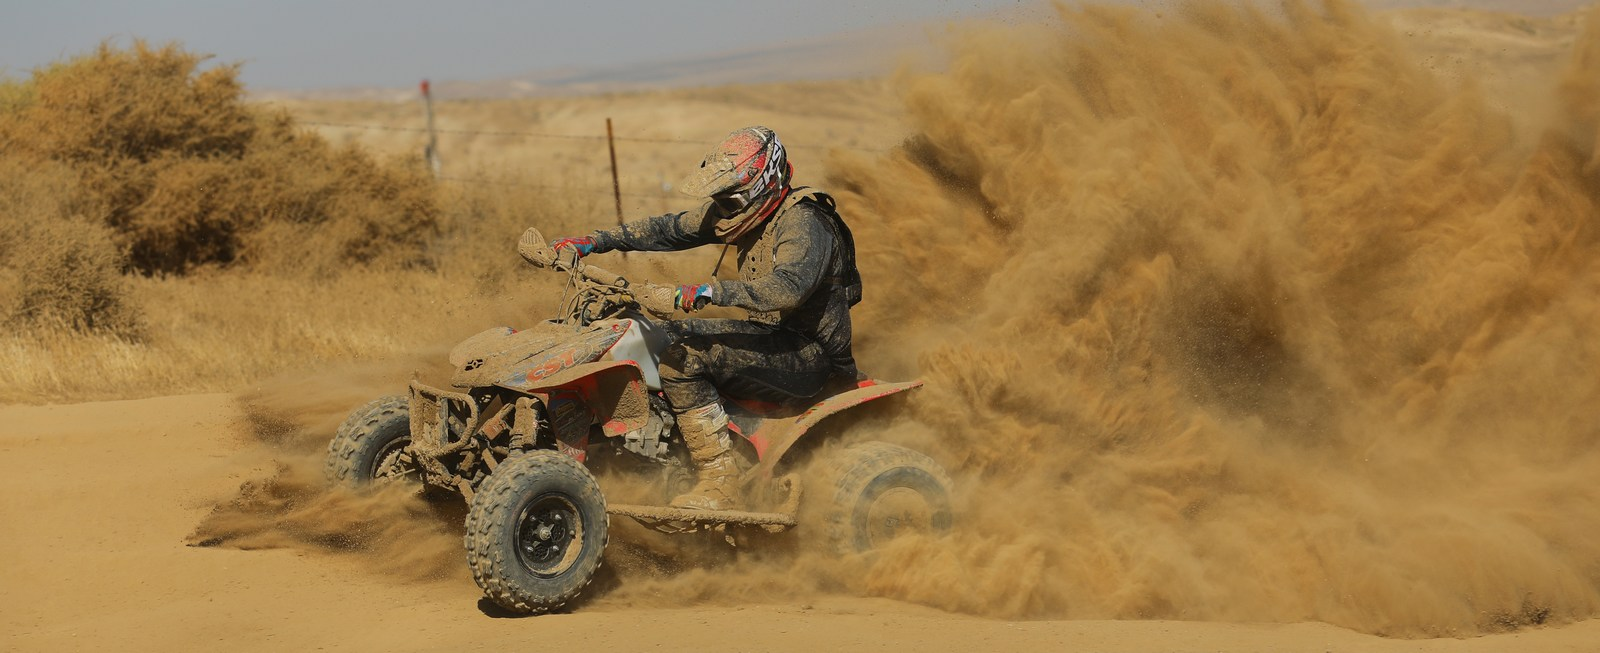 2019-07-beau-baron-silt-atv-worcs-racing